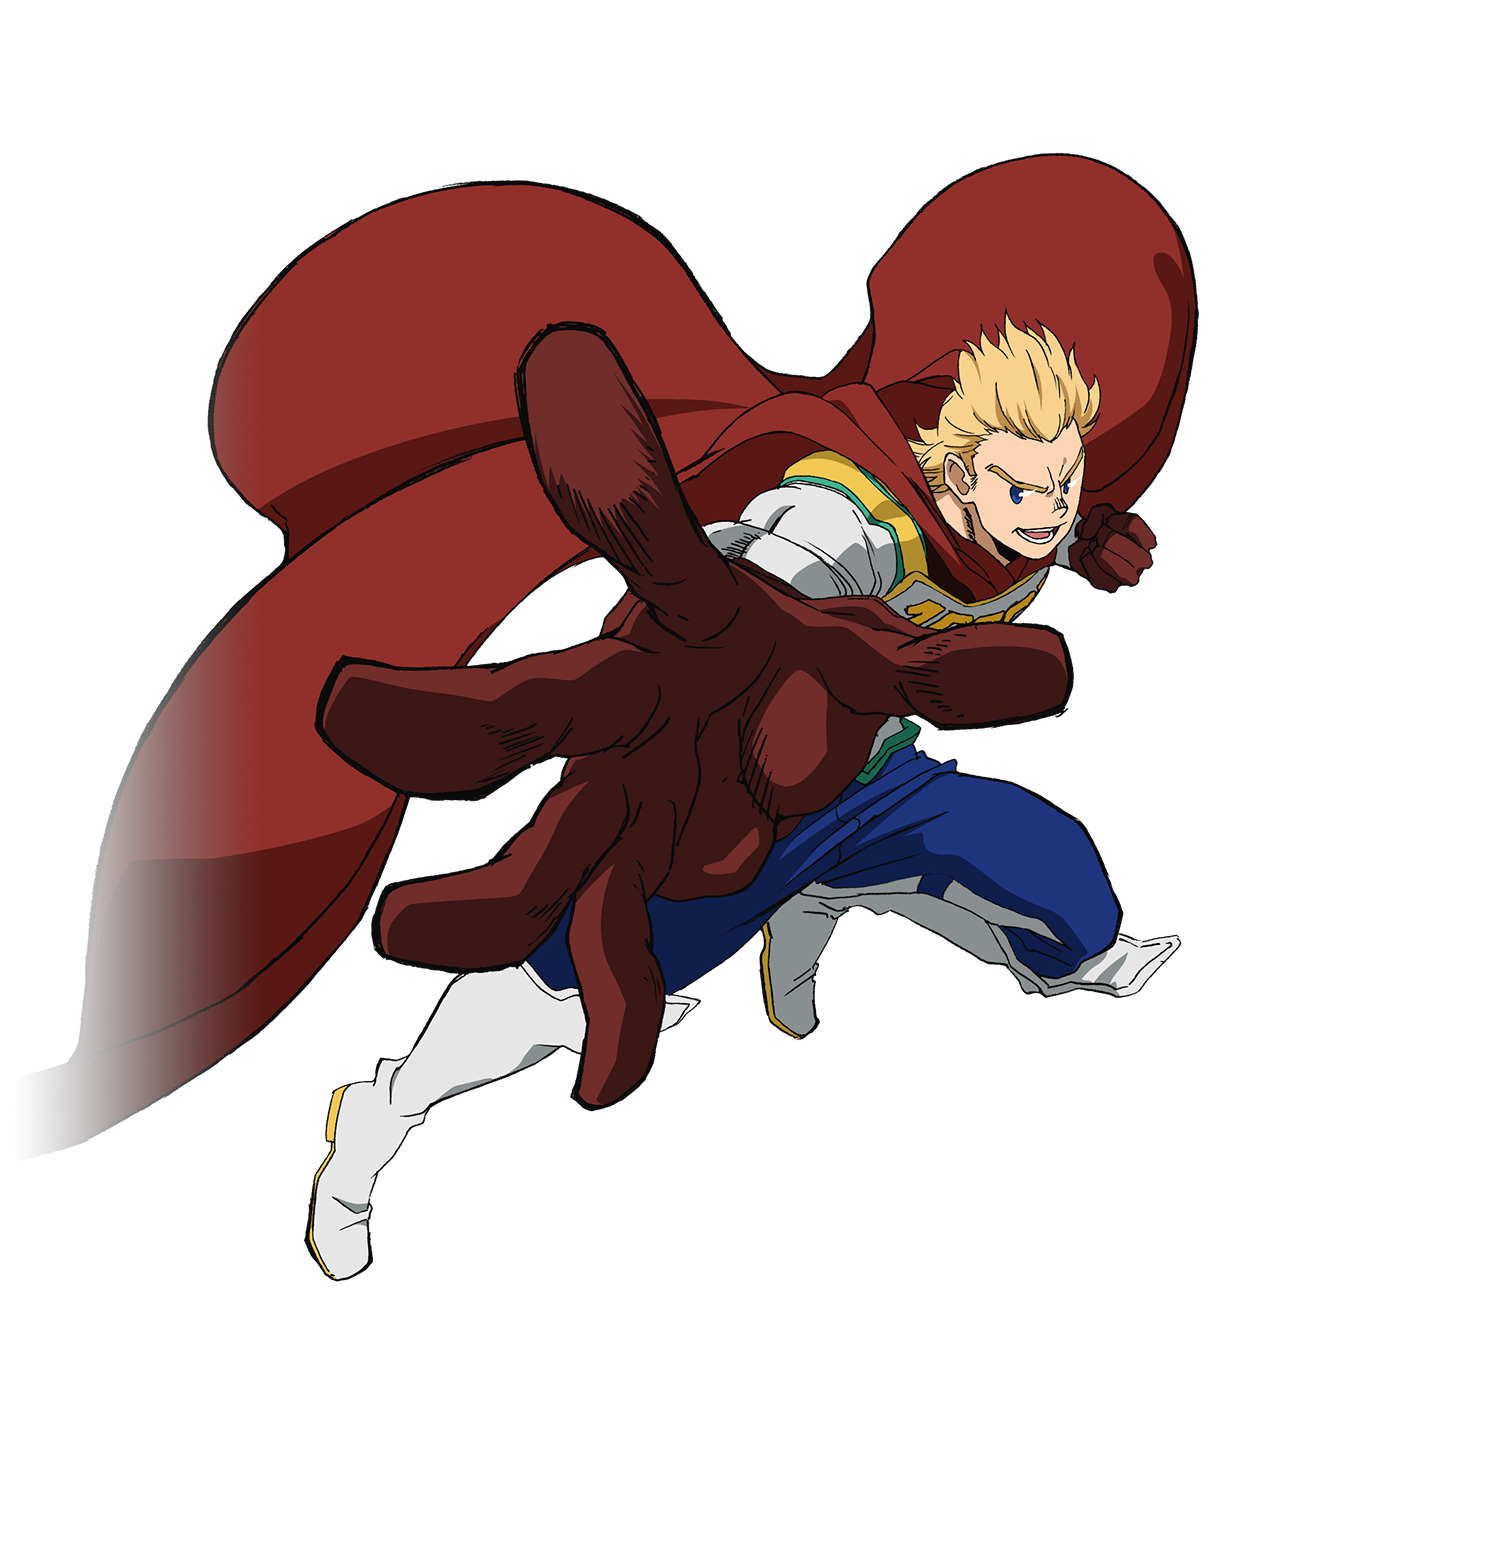 Mirio Togata - LeMillion Render (My Hero One's Justice 2).png